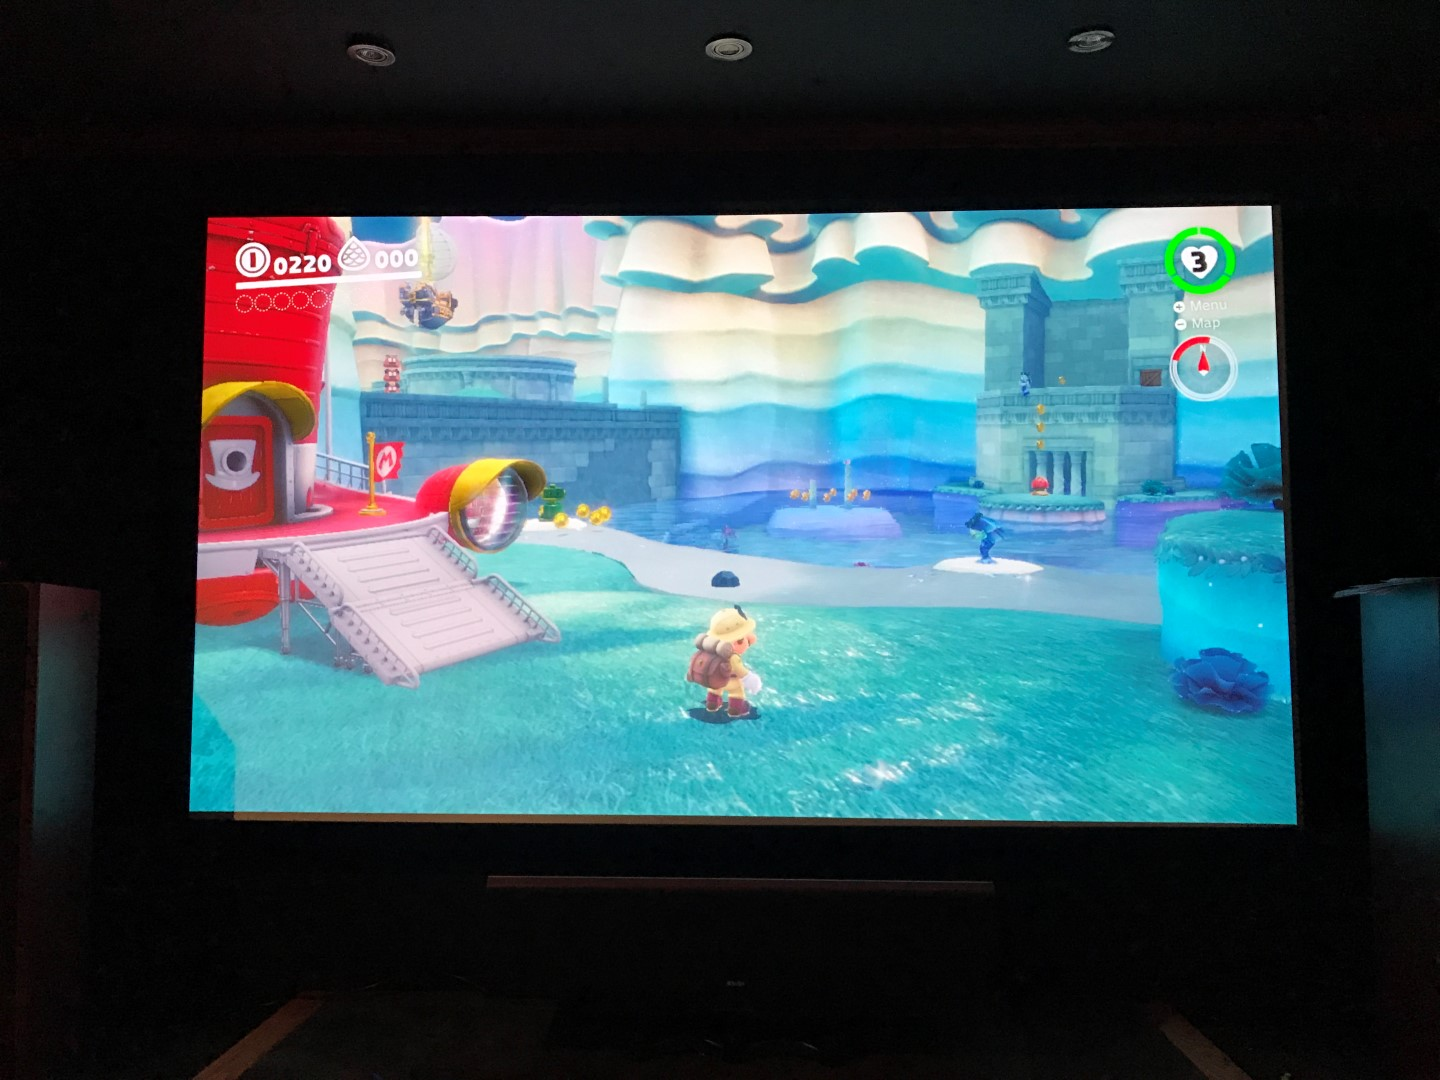 Super Mario Odyssey on projector